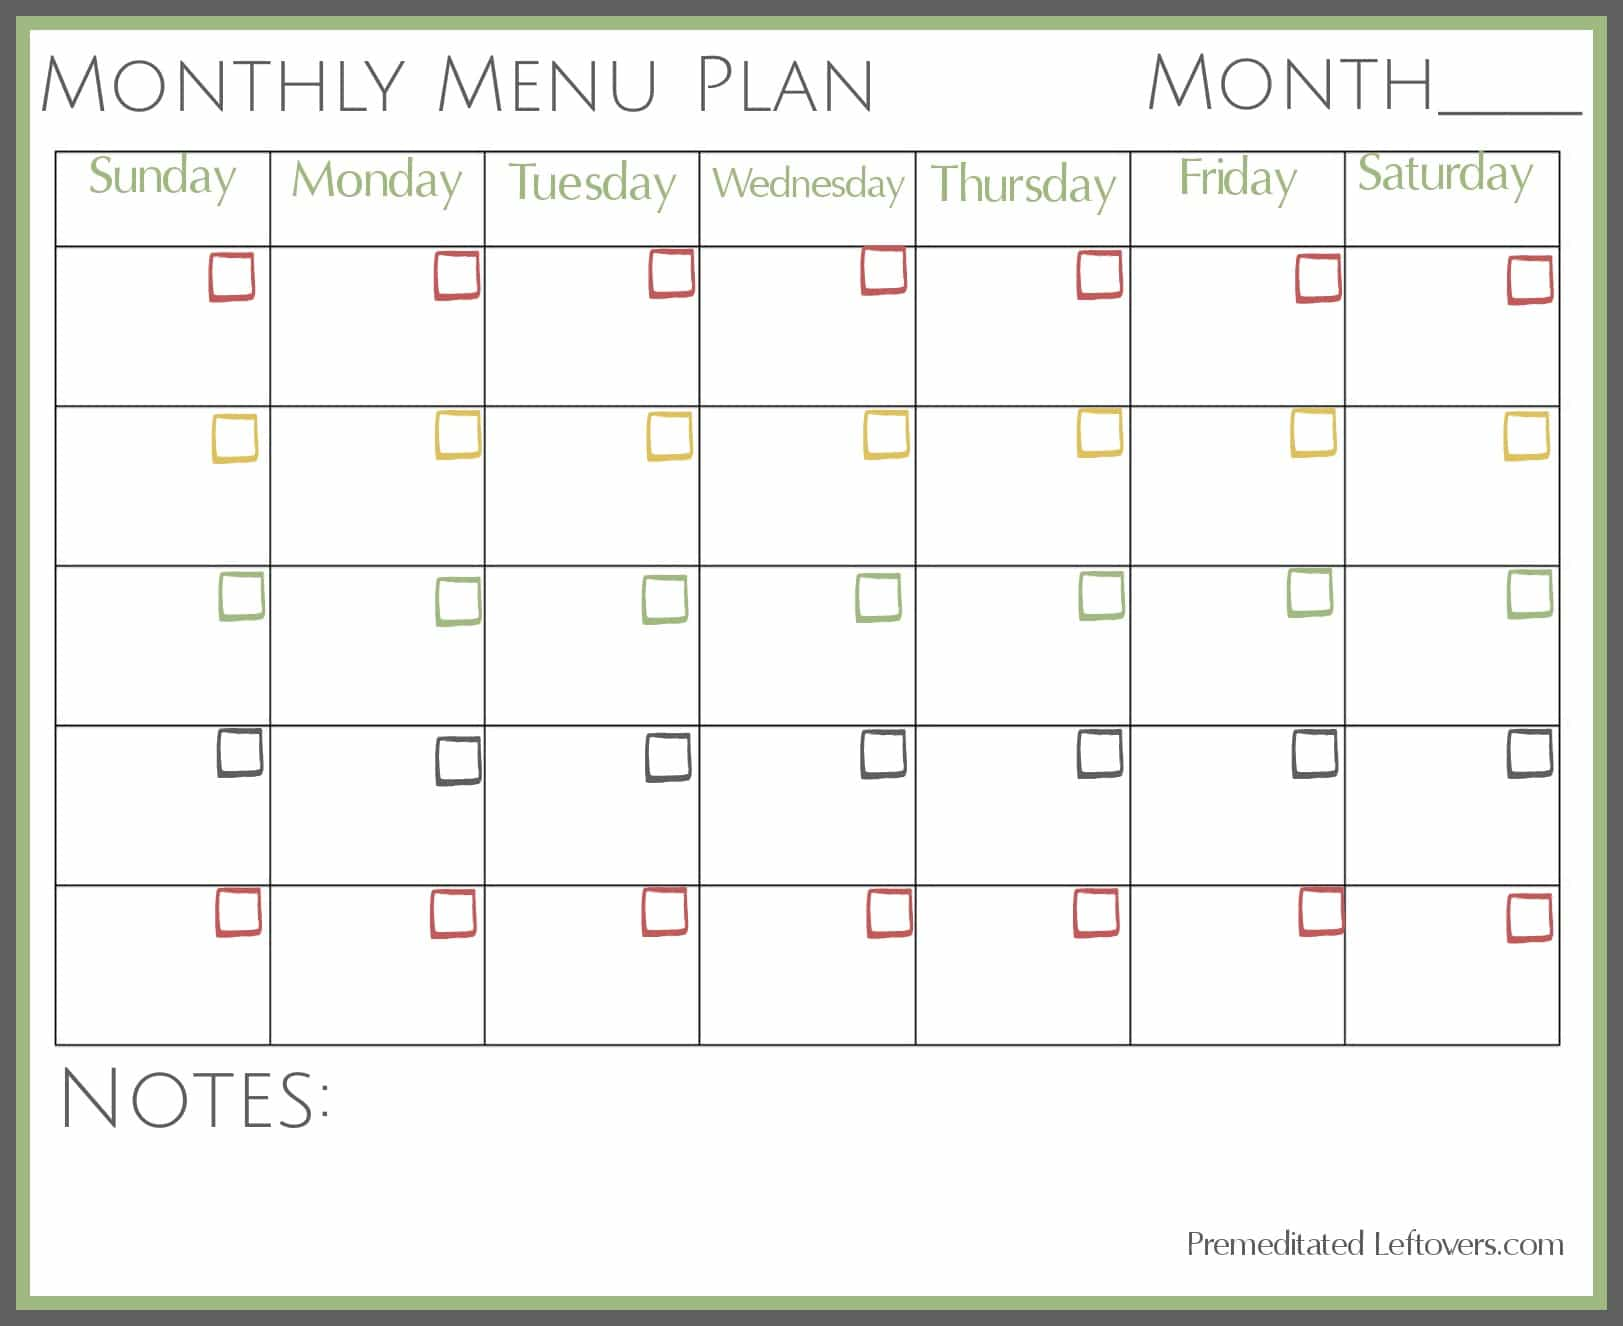 Family Calendar Cookbook The Holocaust Survivor Cookbook Recipes Your Family Will Free Printables From Premeditated Leftovers